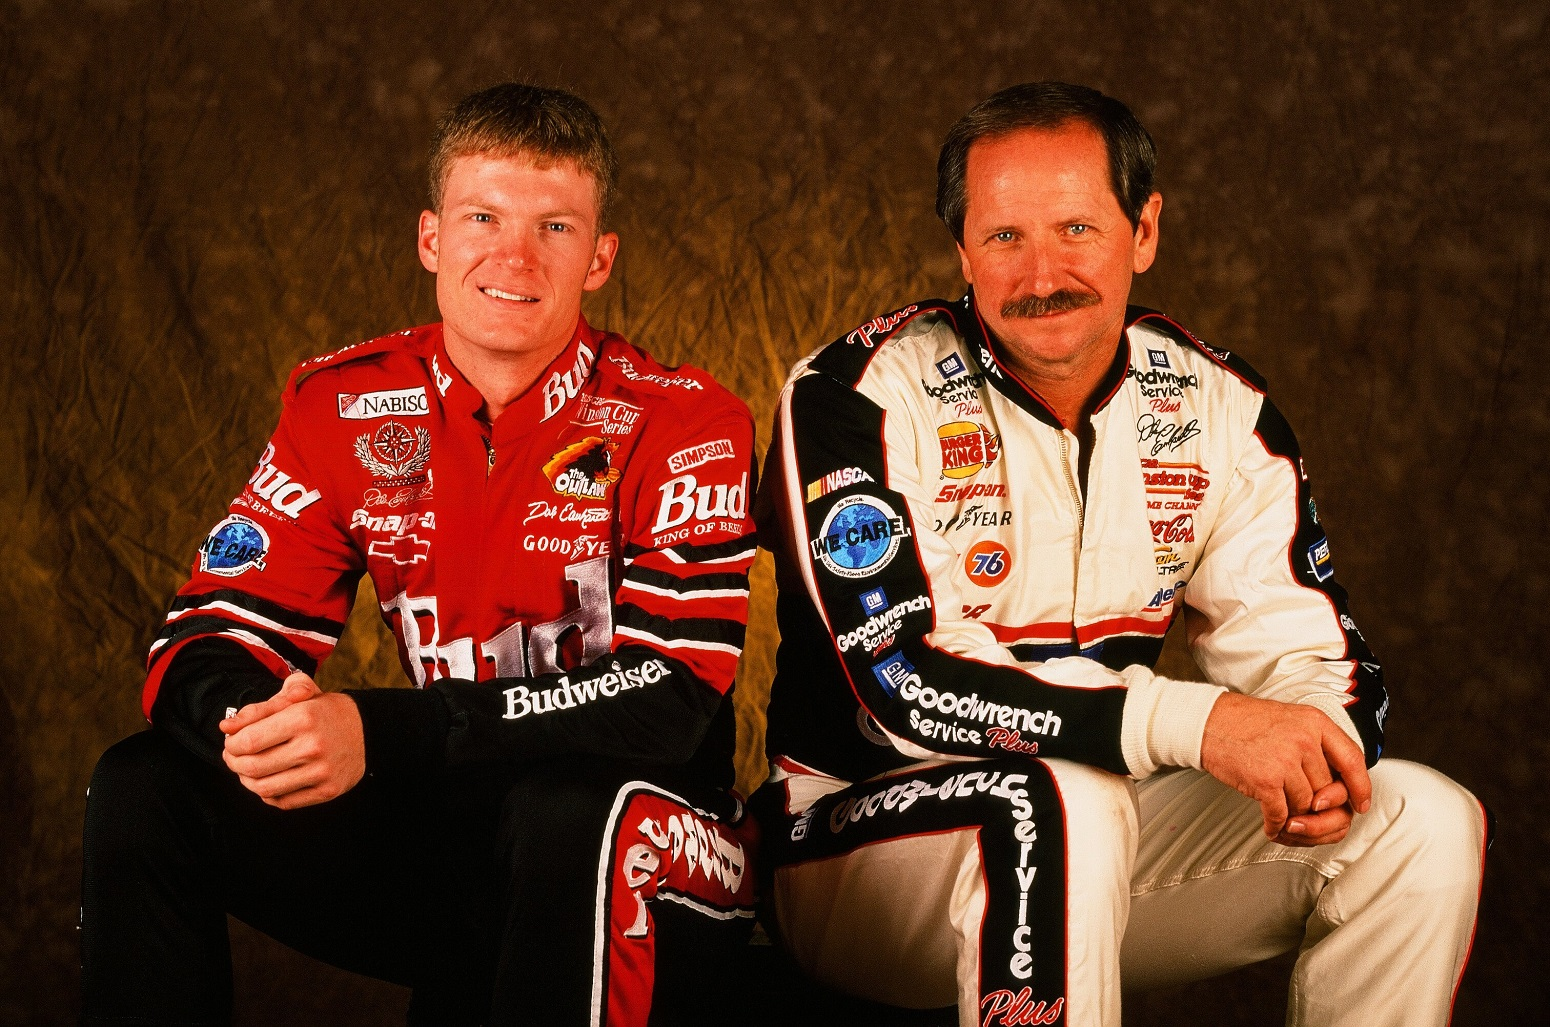 Dale Earnhardt Jr. nearly tossed out father's priceless treasure